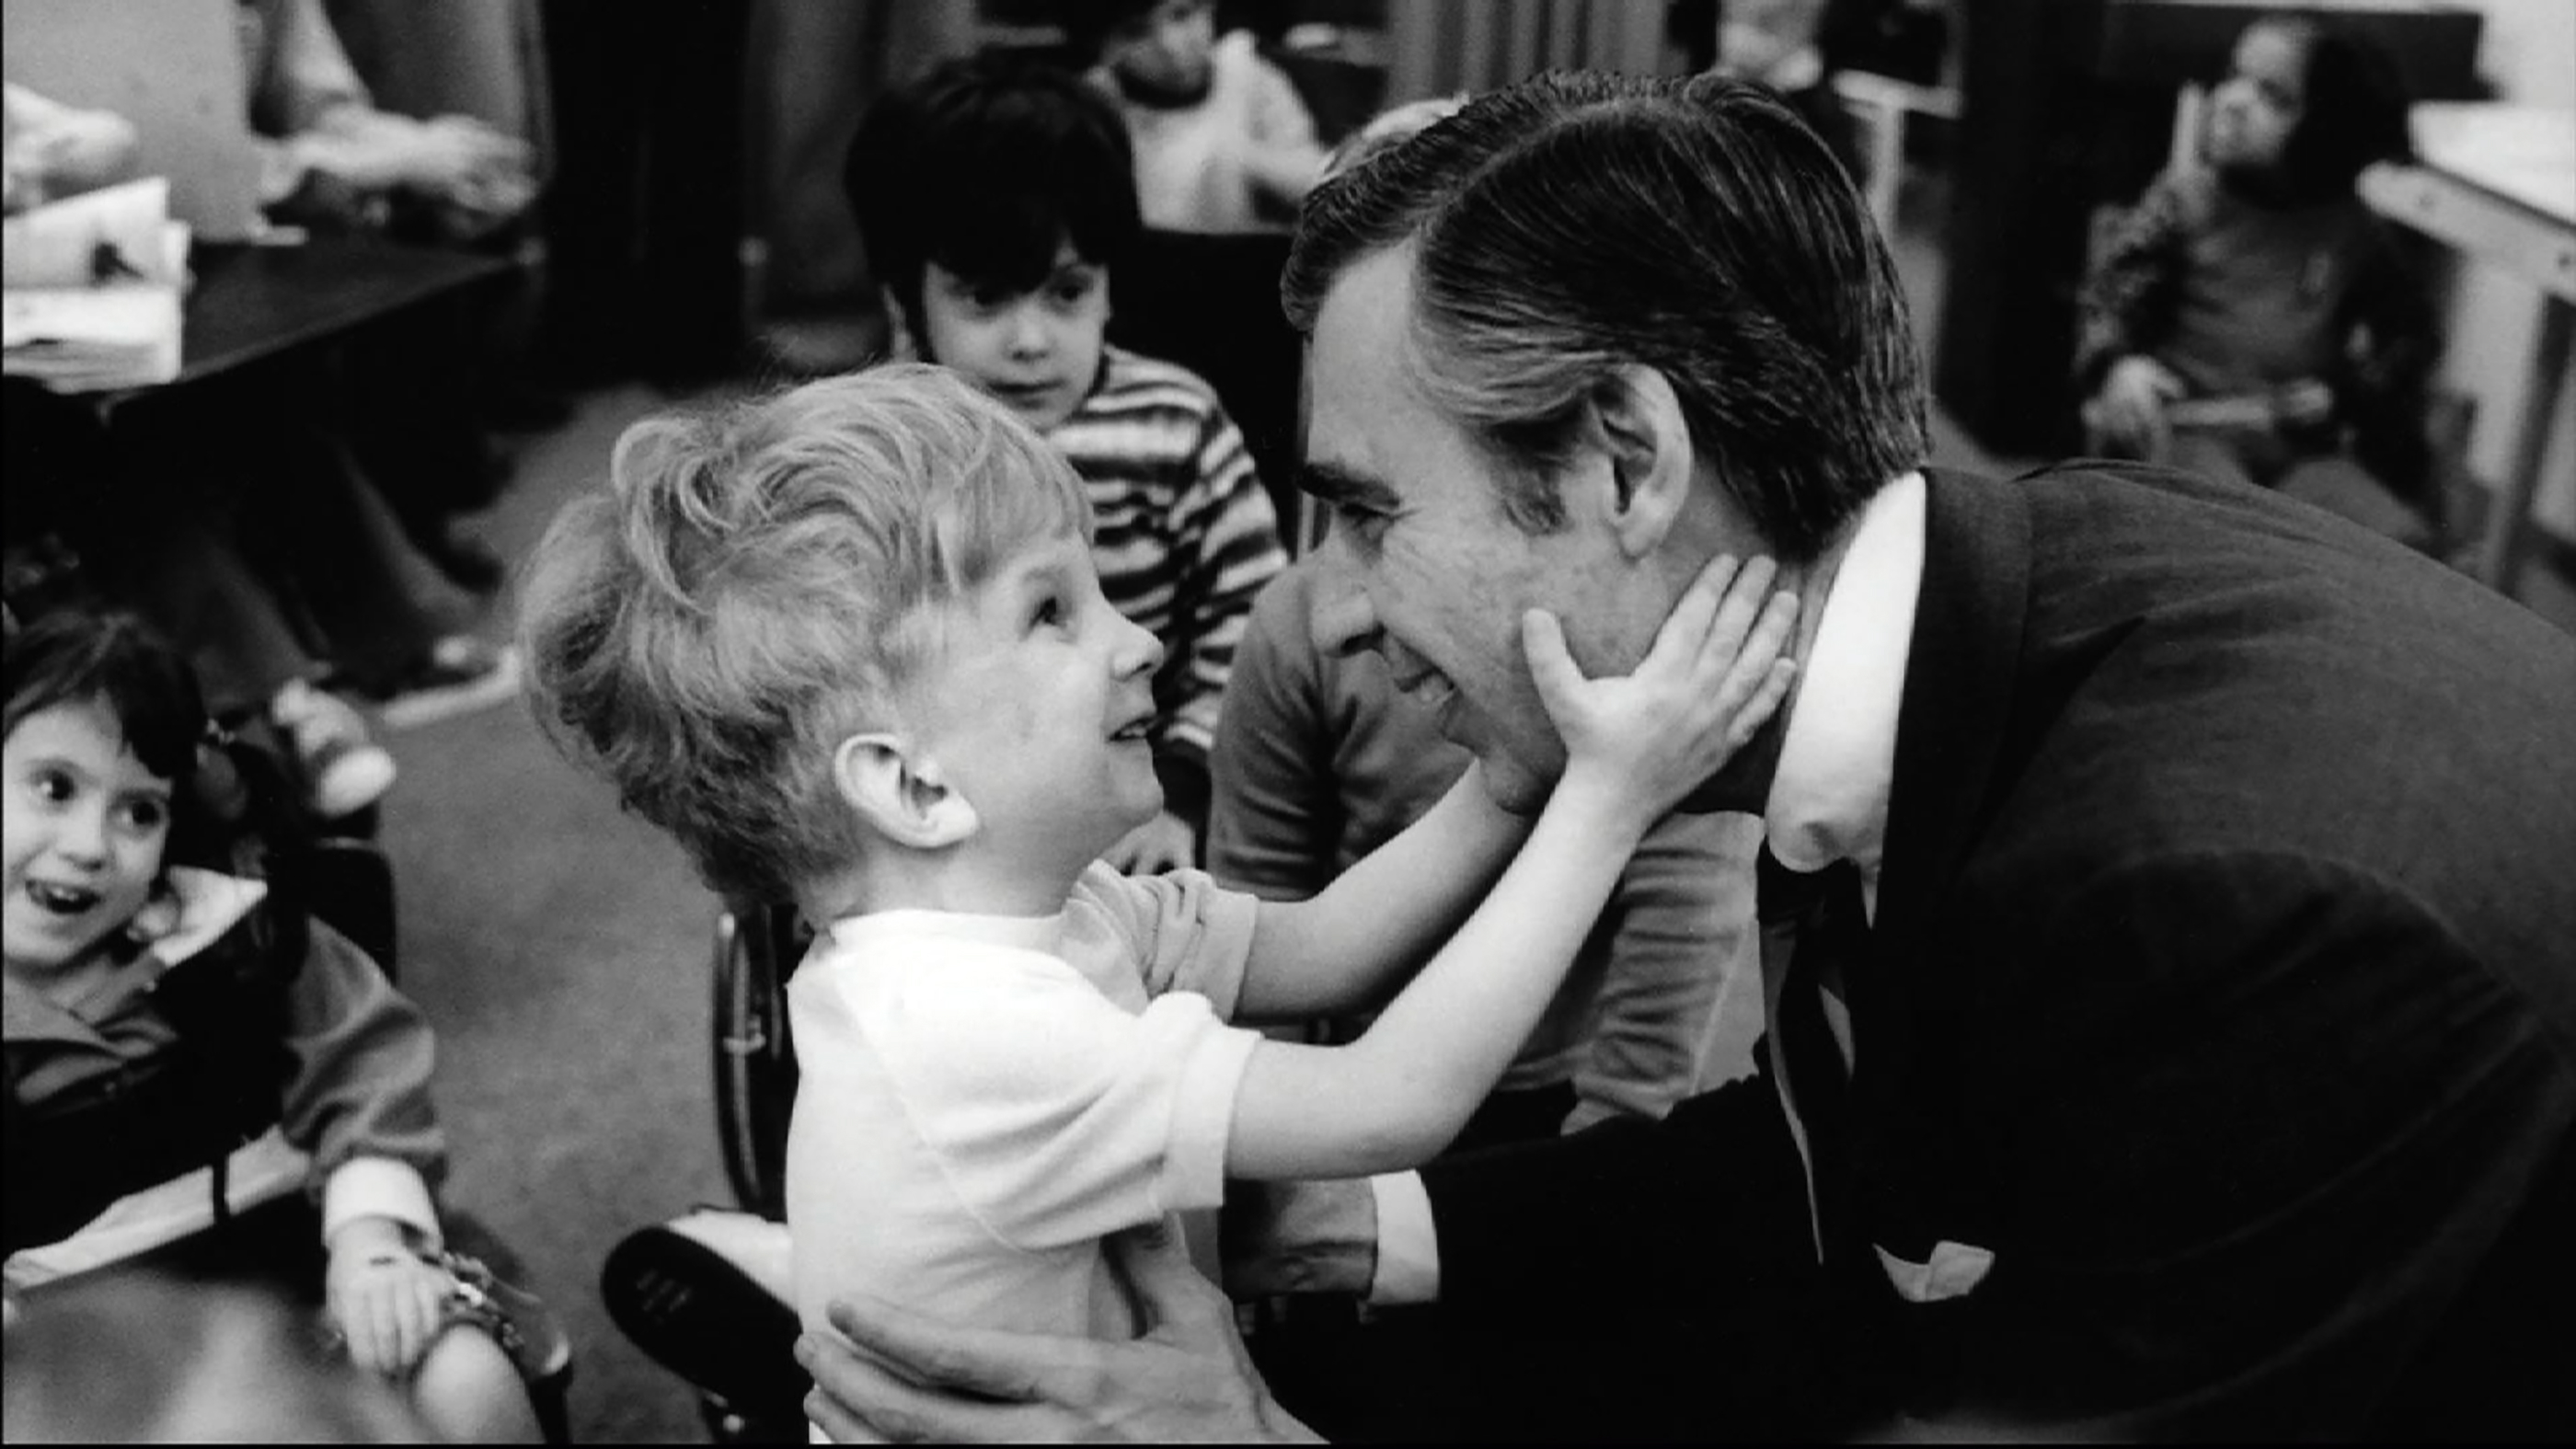 """Fred Rogers meets with a disabled boy in the film, """"Won't You Be My Neighbor?,"""" a Focus Features release. (Credit: Jim Judkis)"""